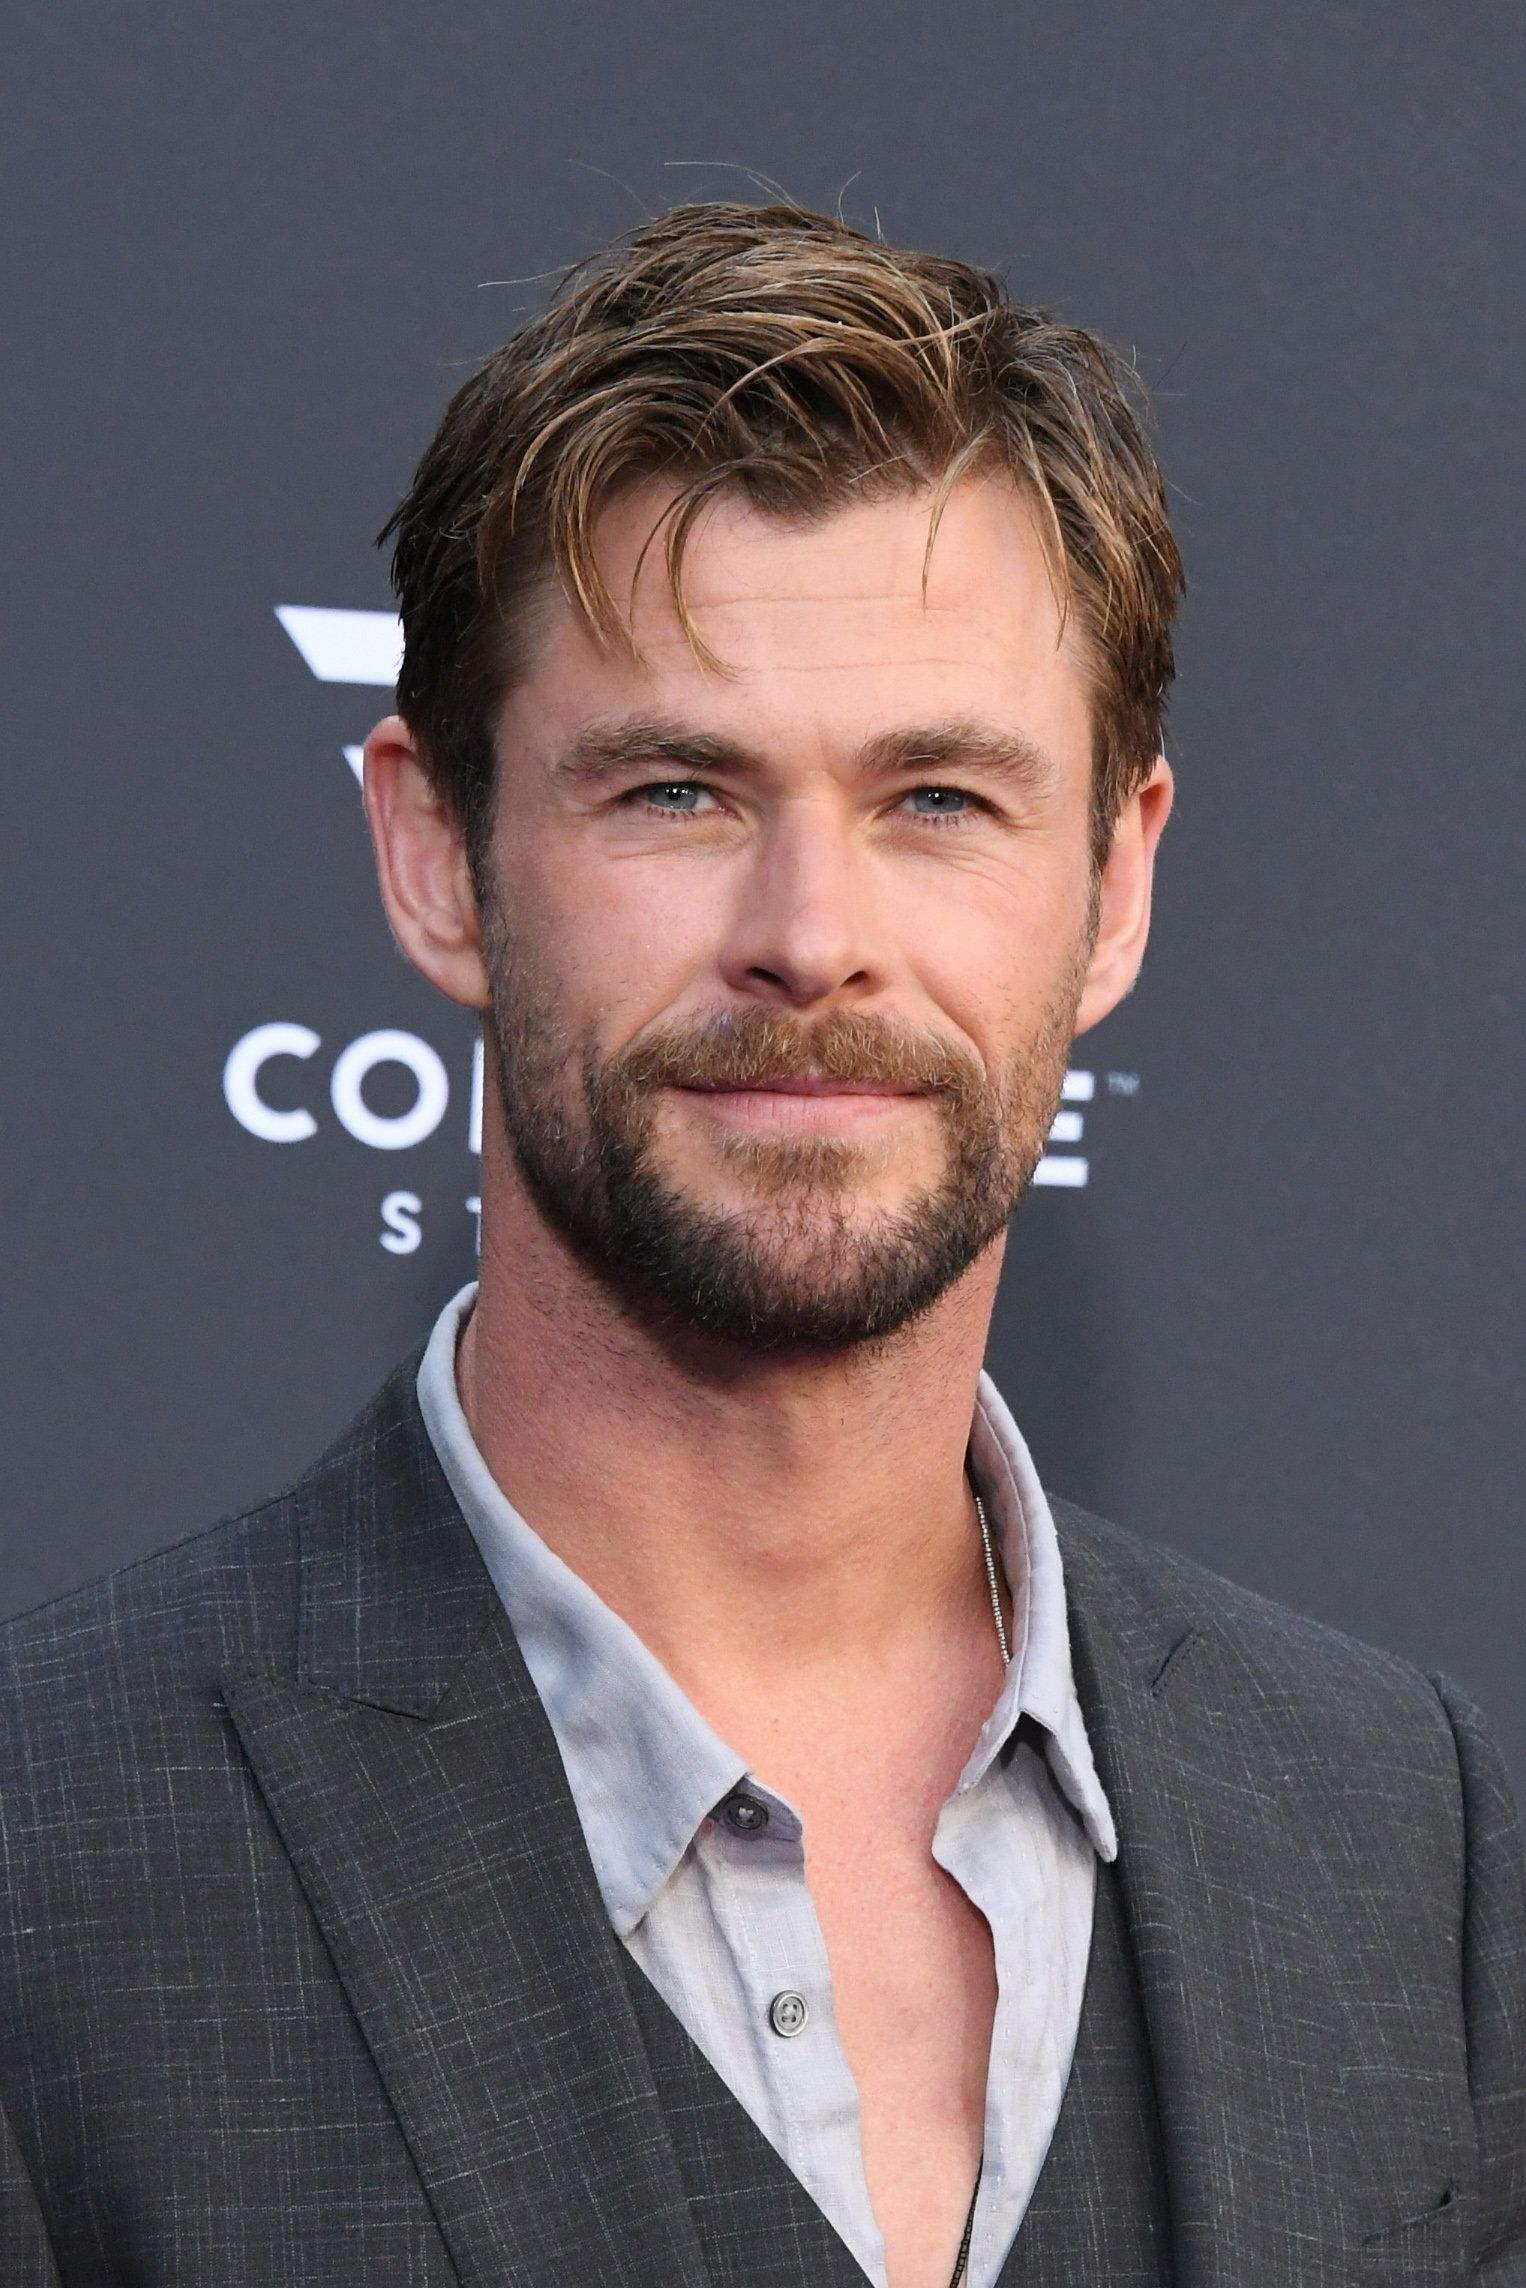 Chris Hemsworth Says His Acting 'Suffered' After He Became A